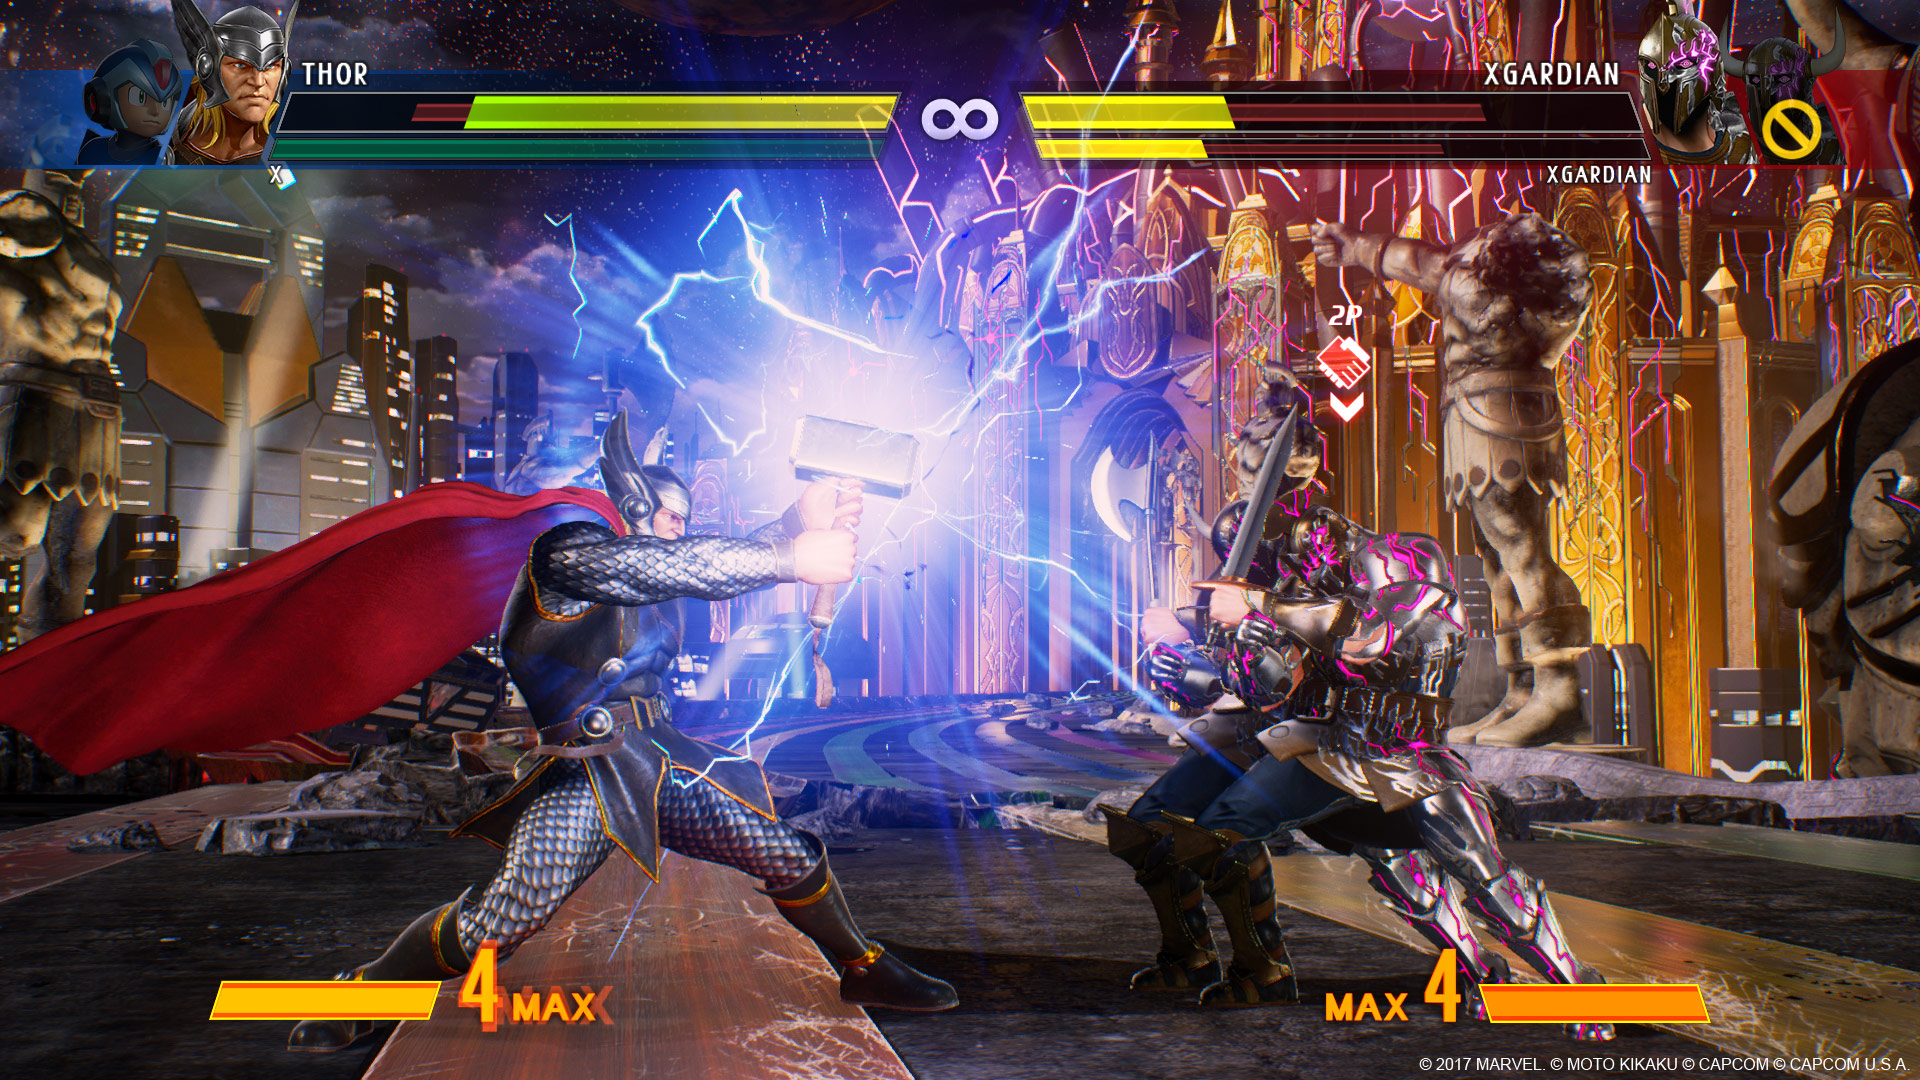 Marvel vs. Capcom: Infinite cover art and new character images from E3 2017 24 out of 26 image gallery